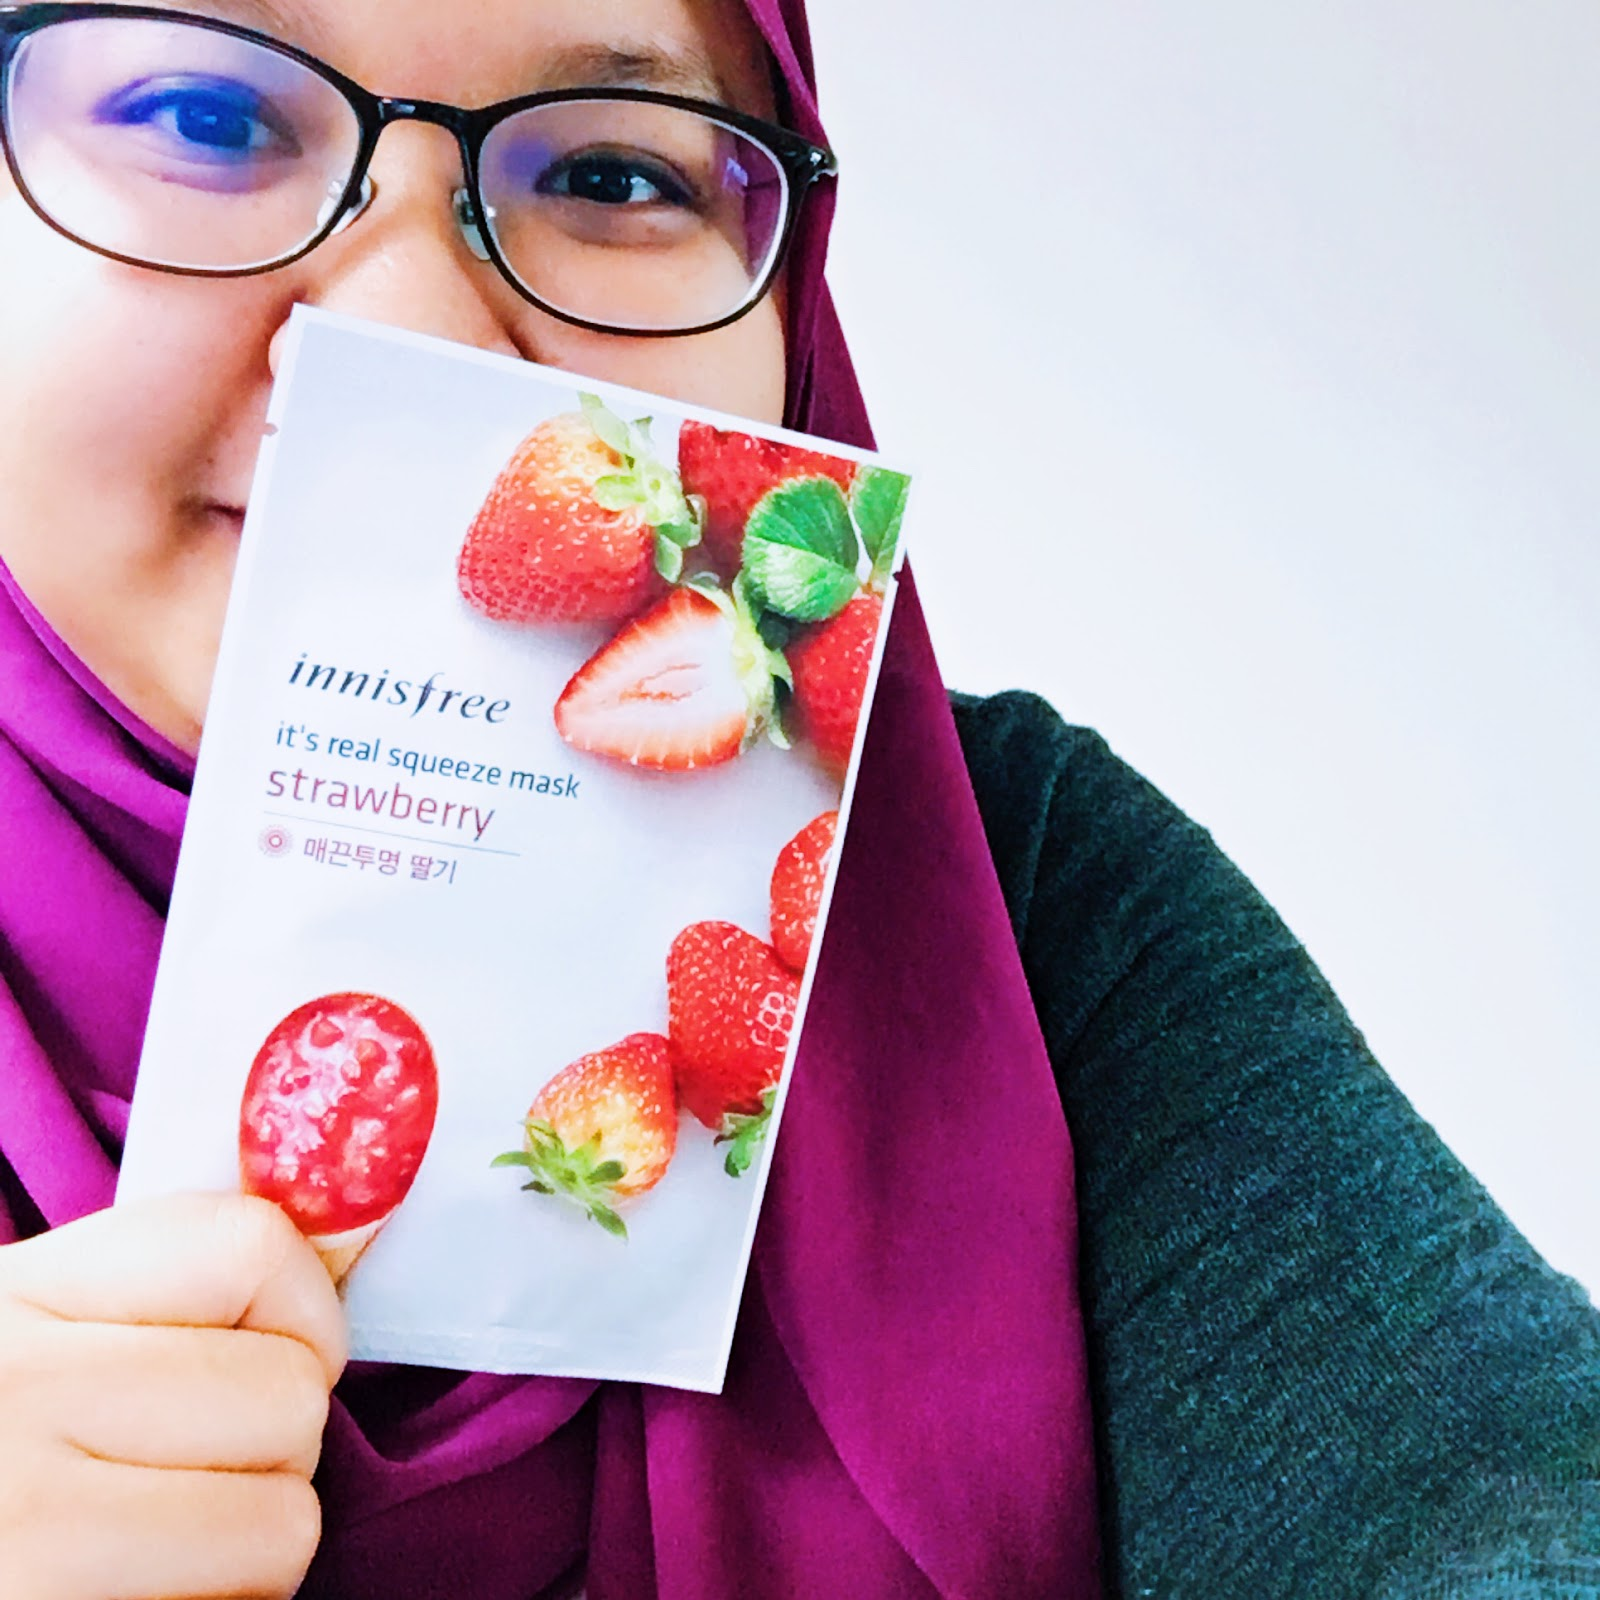 Innisfree Its Real Squeeze Mask Review Thinker Belle Black Berry The Varieties Of These Masks Is Endless It Took Me Awhile To Actually Finish Choosing Which One Would Be Perfect For My Skin